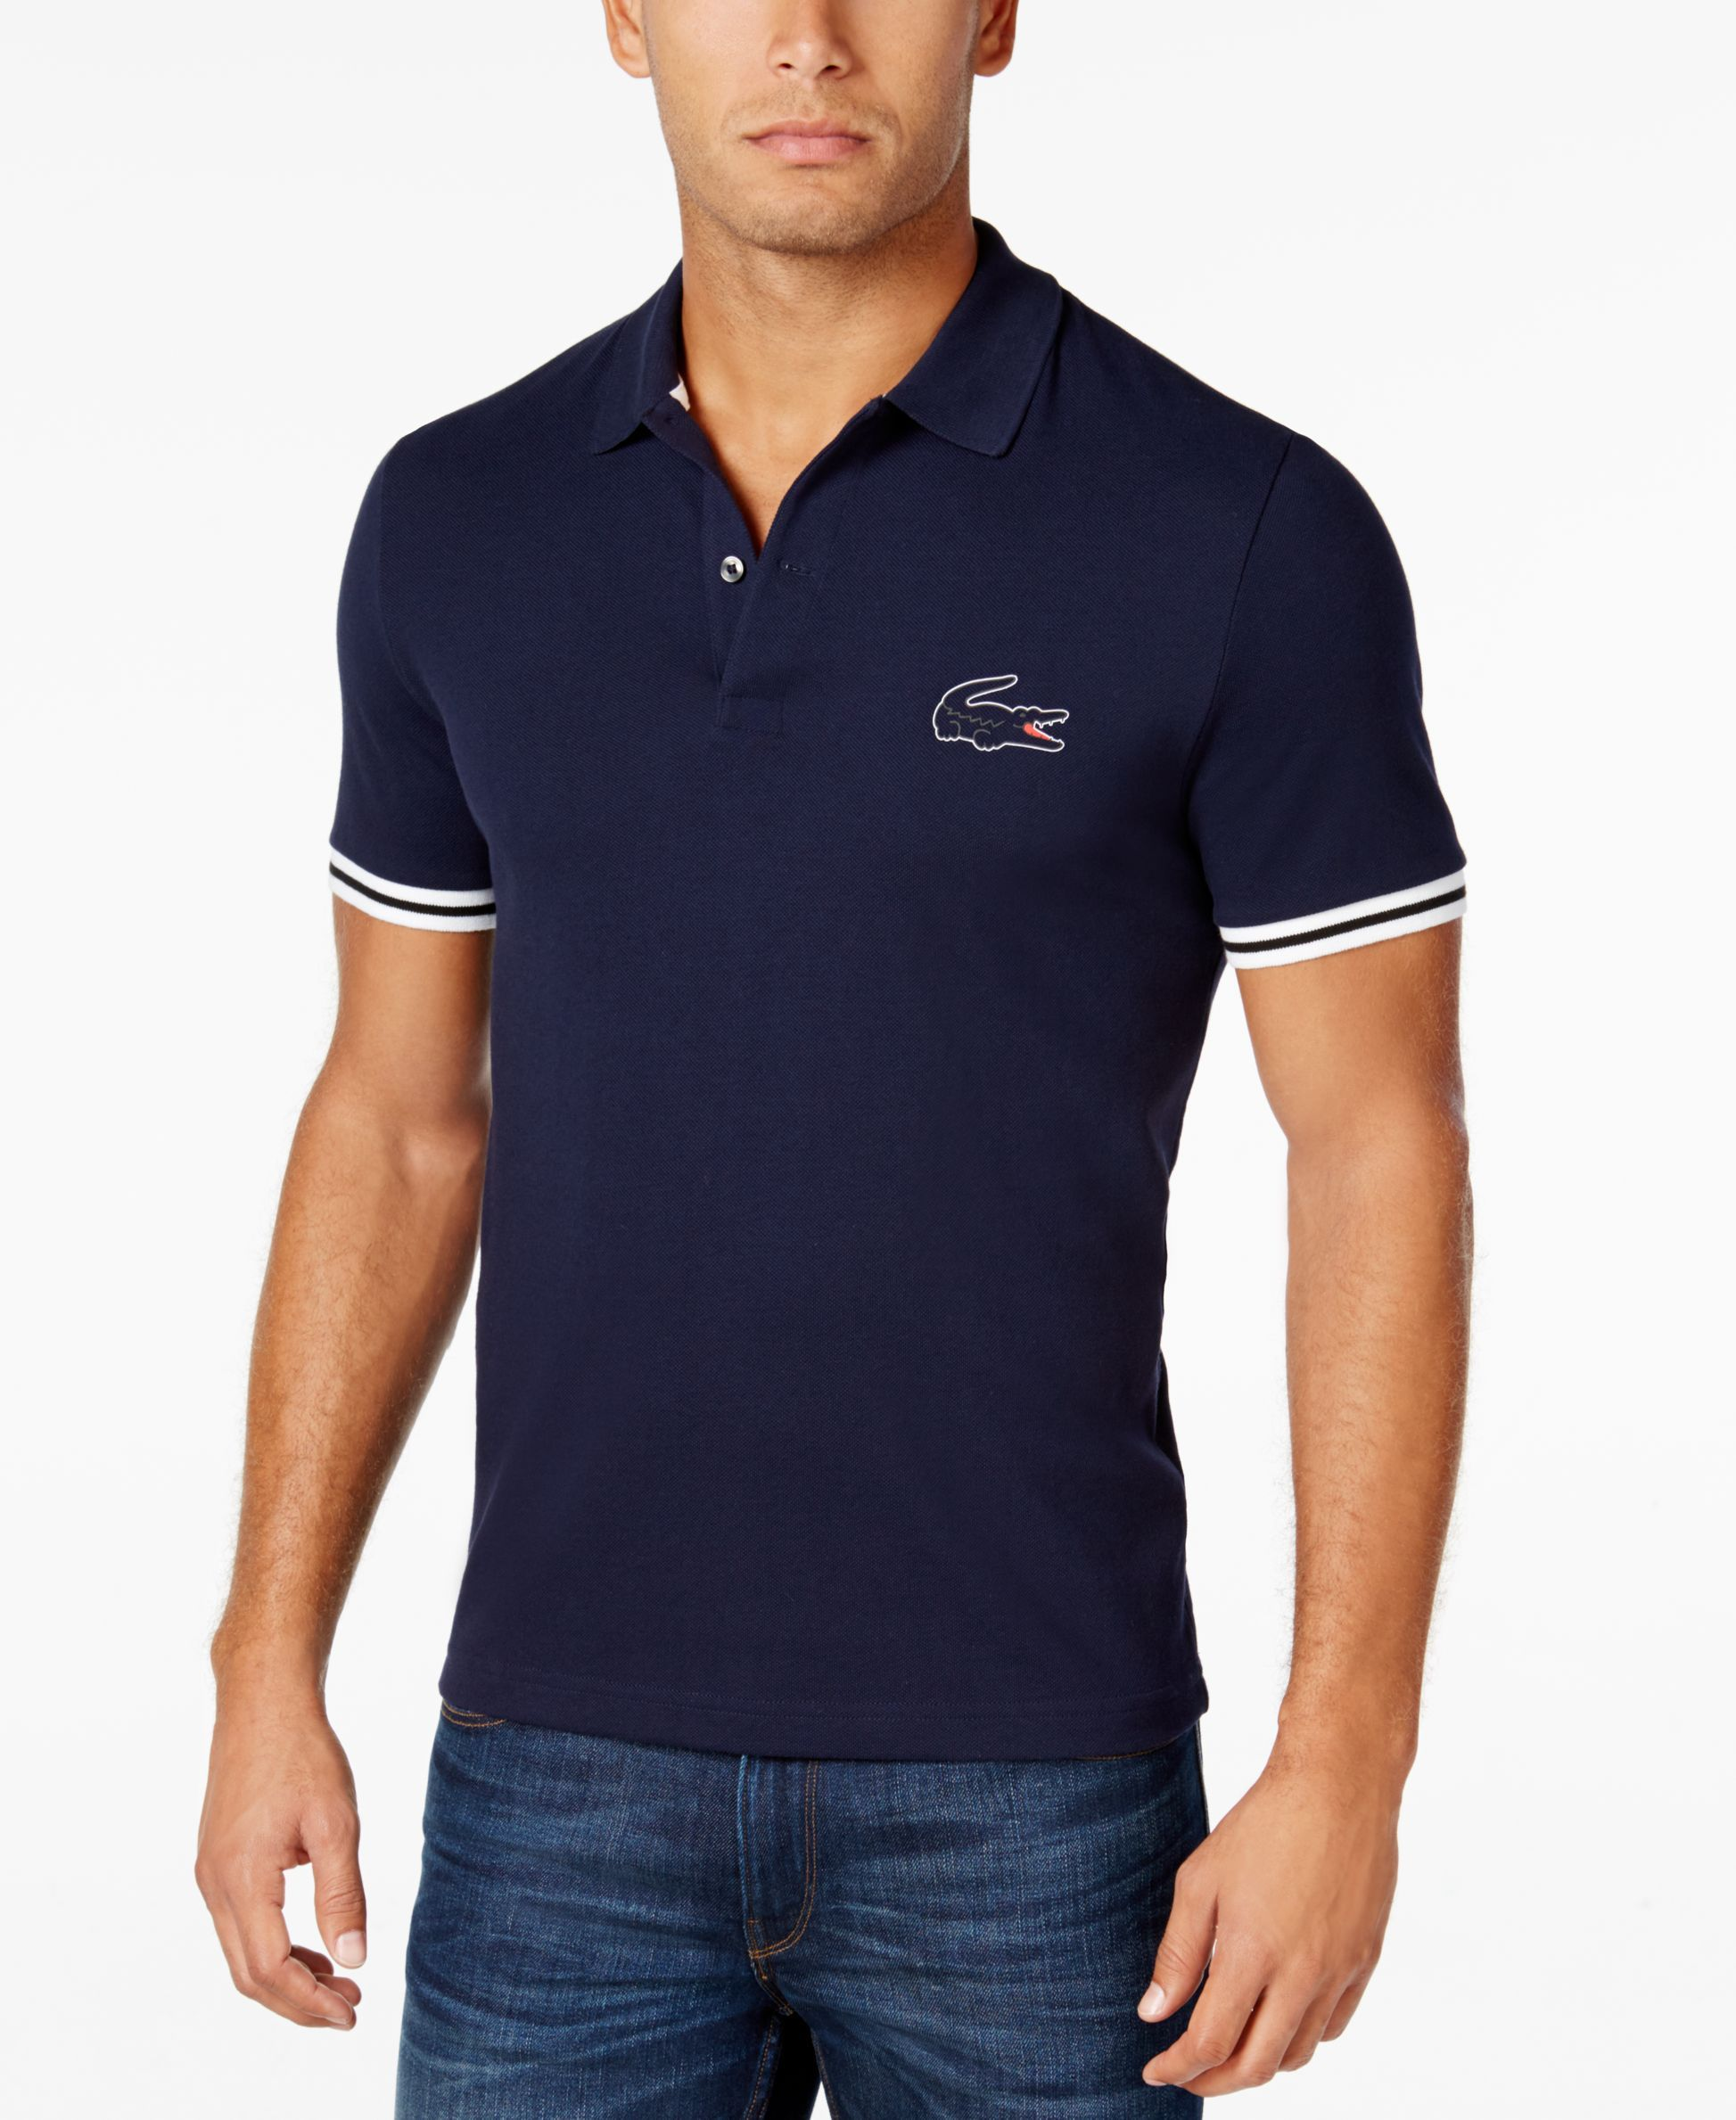 Lacoste Mens Tipped Sleeve Polo Shirts Pinterest Lacoste Men